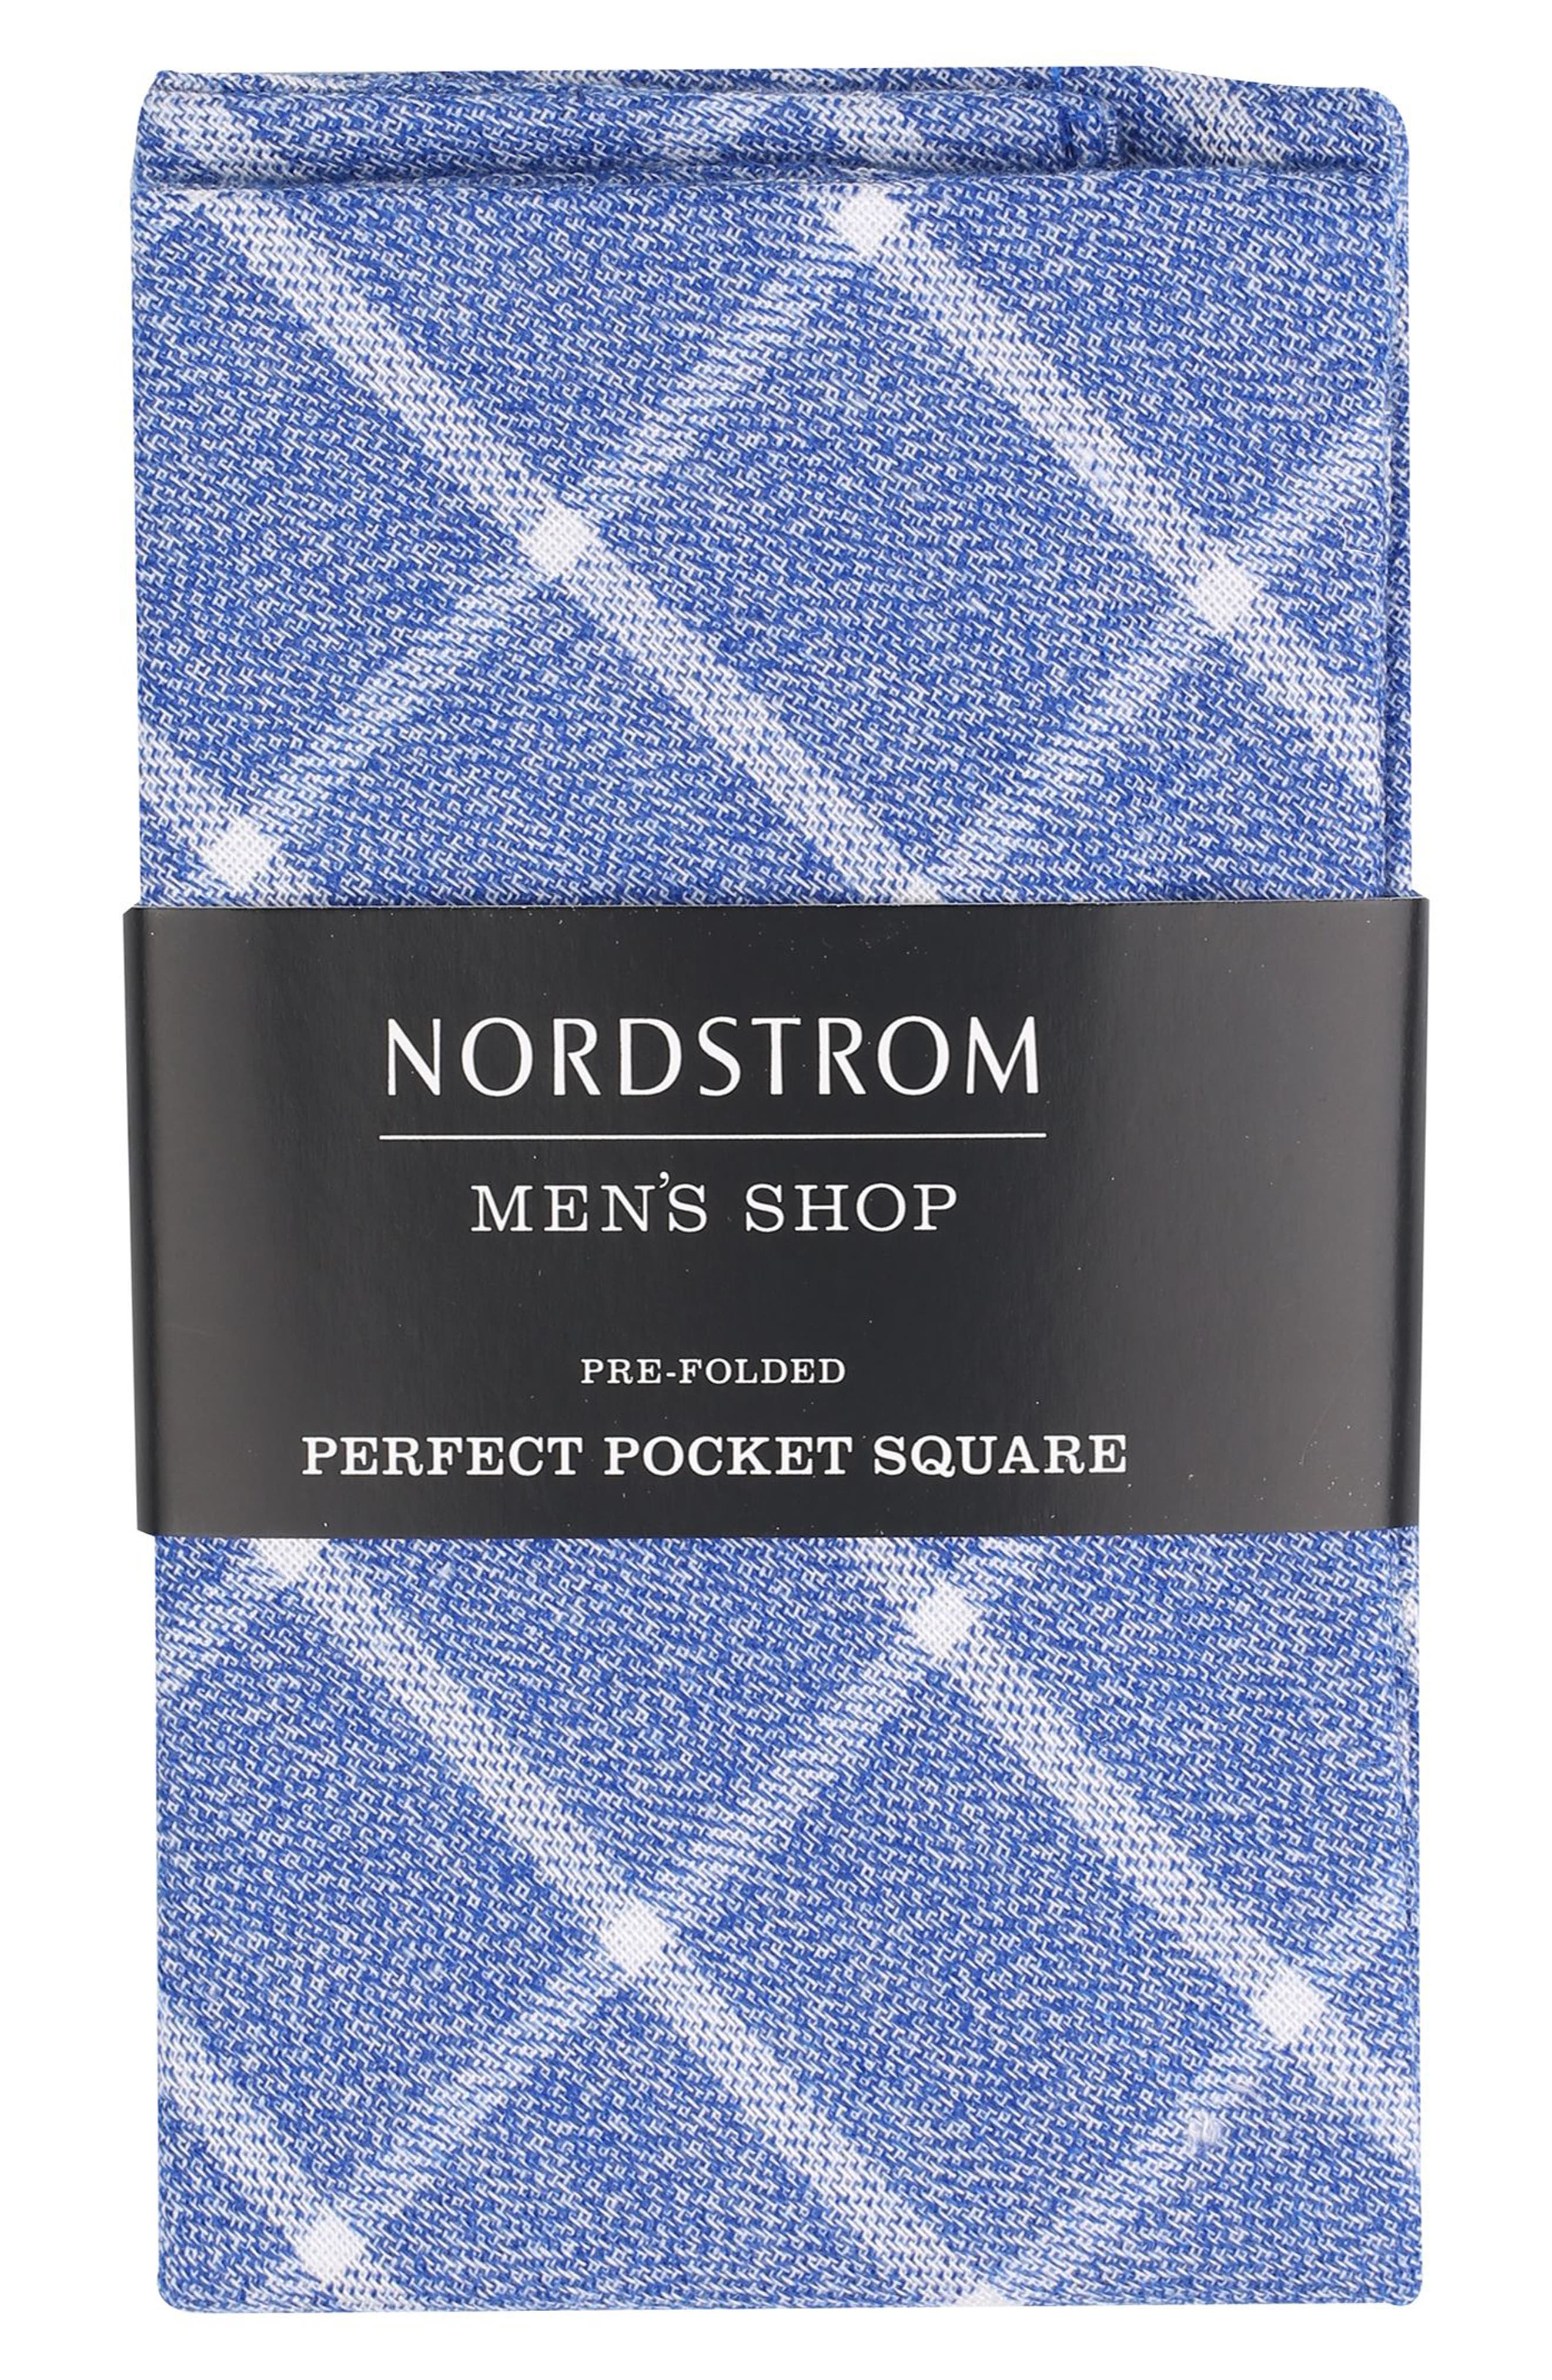 Nordstrom Men's Shop The Perfect Pocket Square